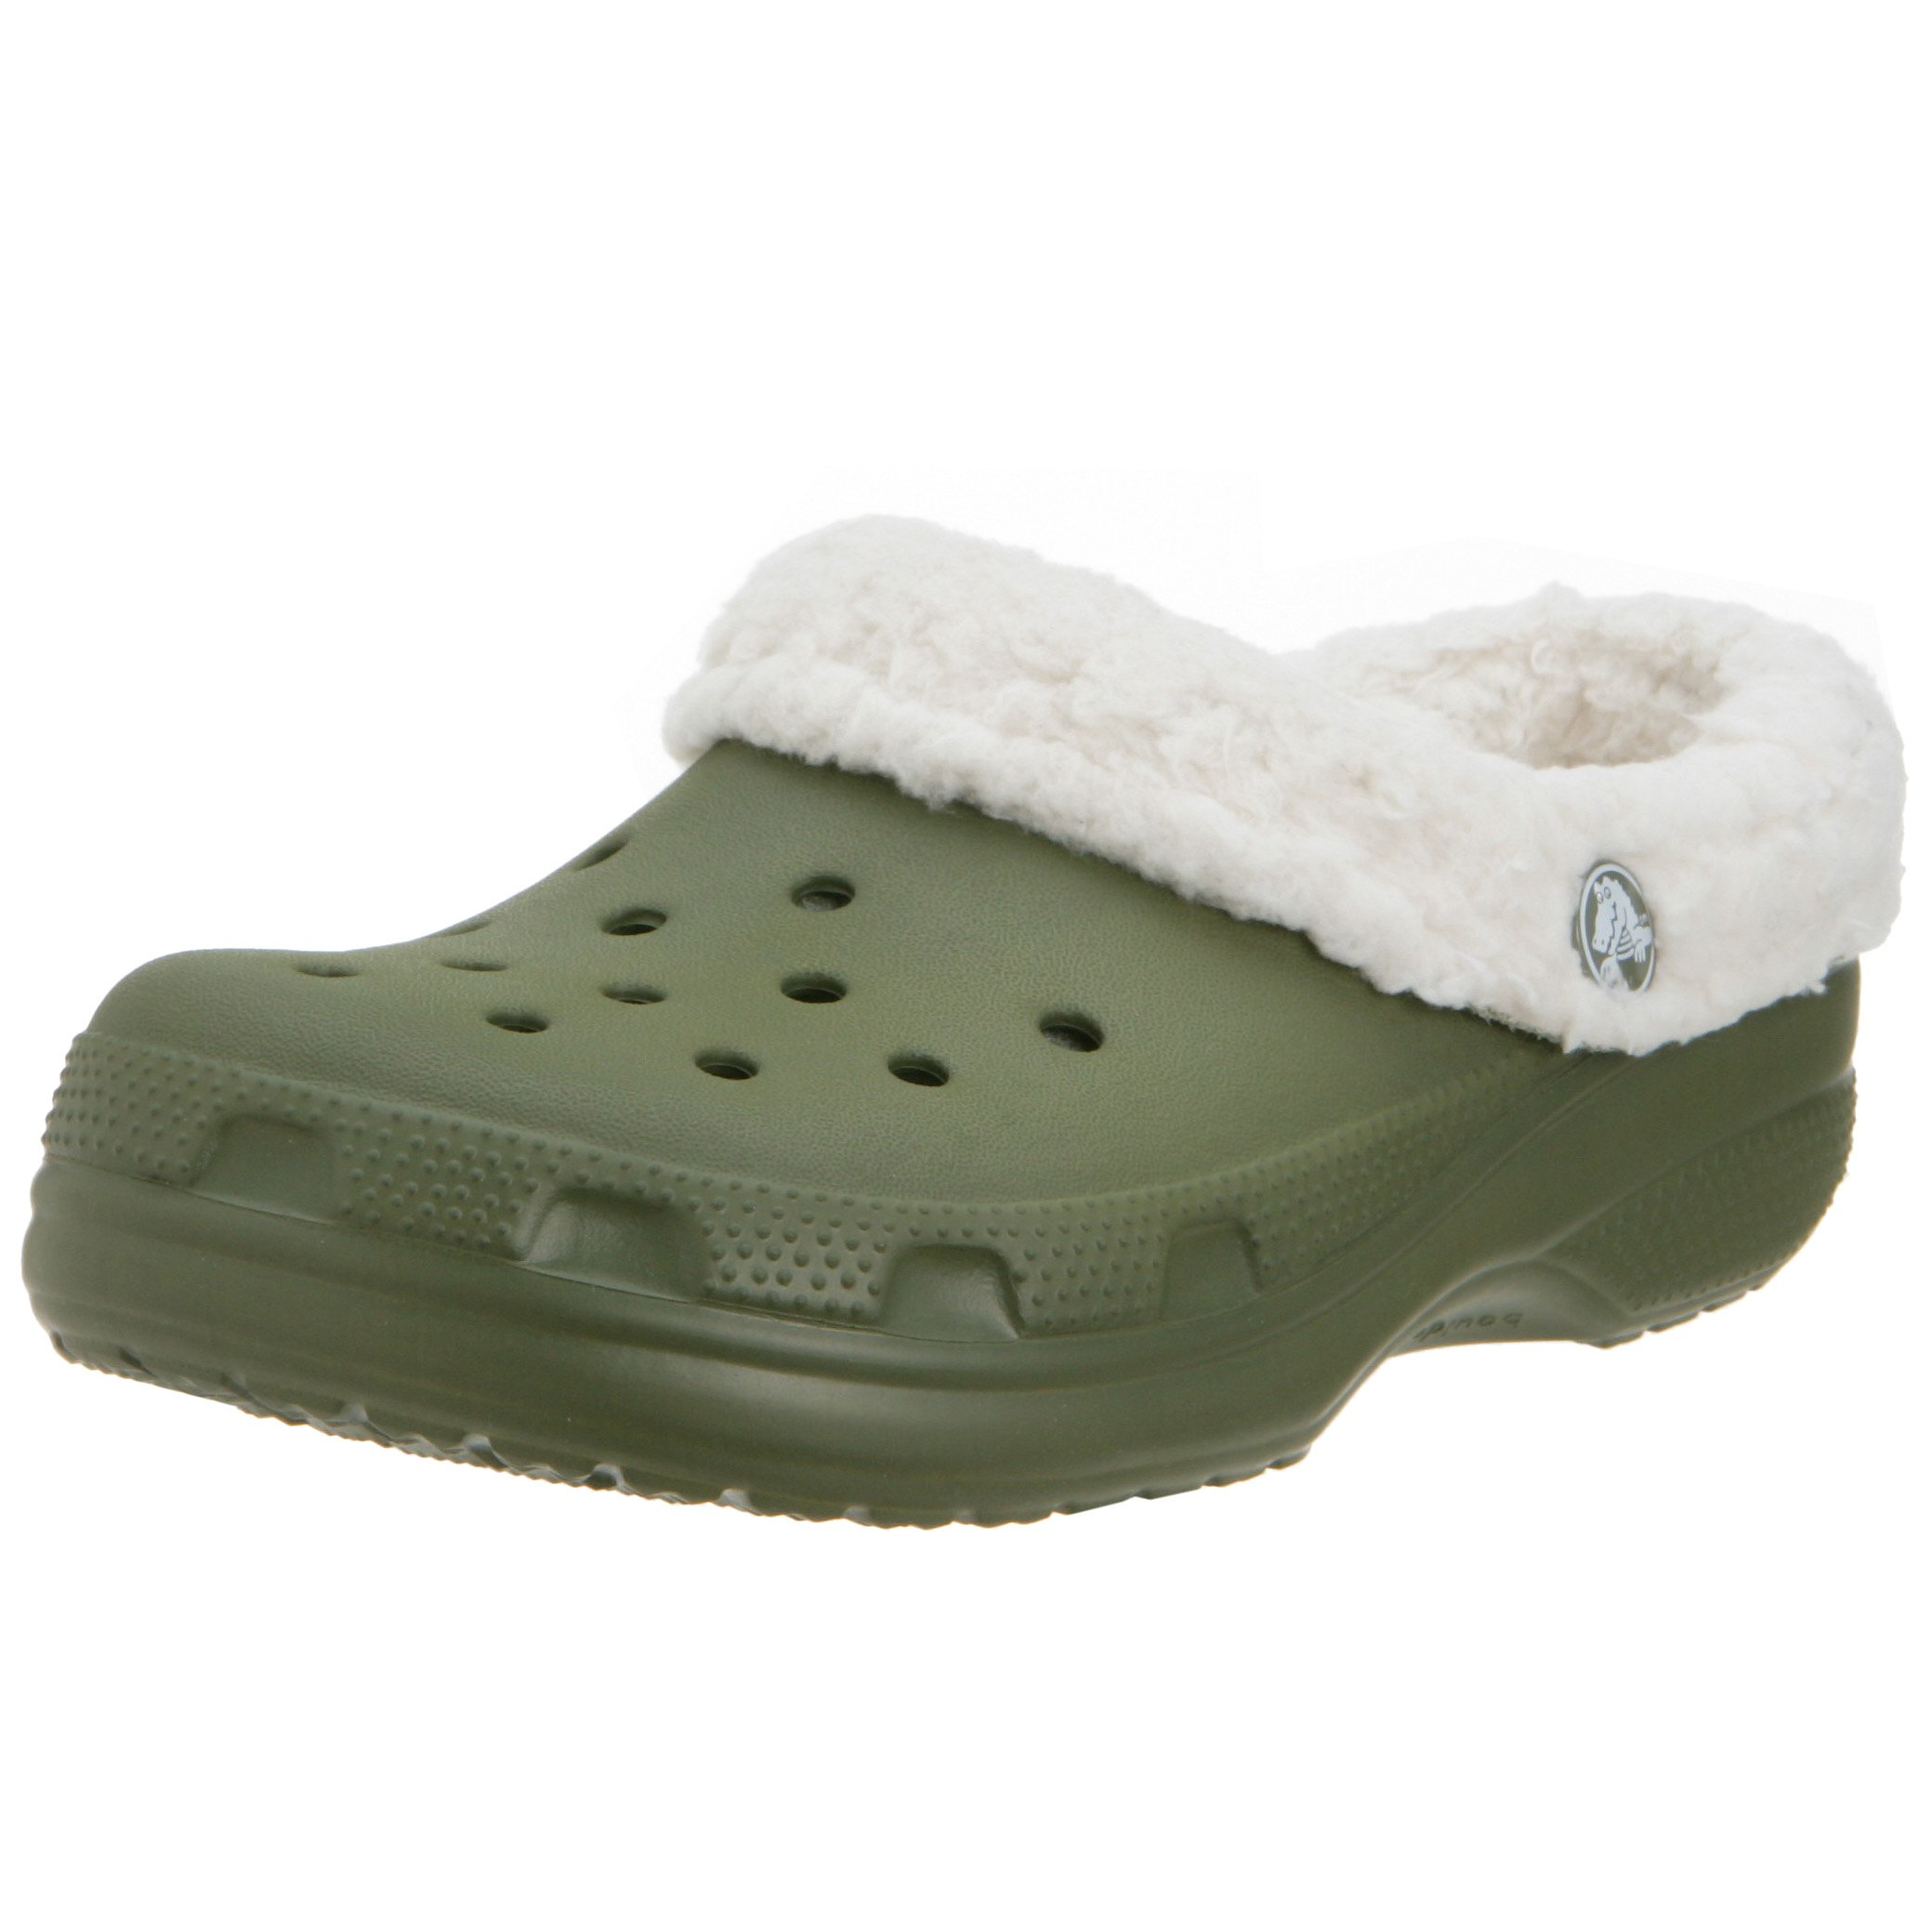 Crocs Mammoth Shoes Army Green Kids Size C6 / C7 by Crocs (Image #1)